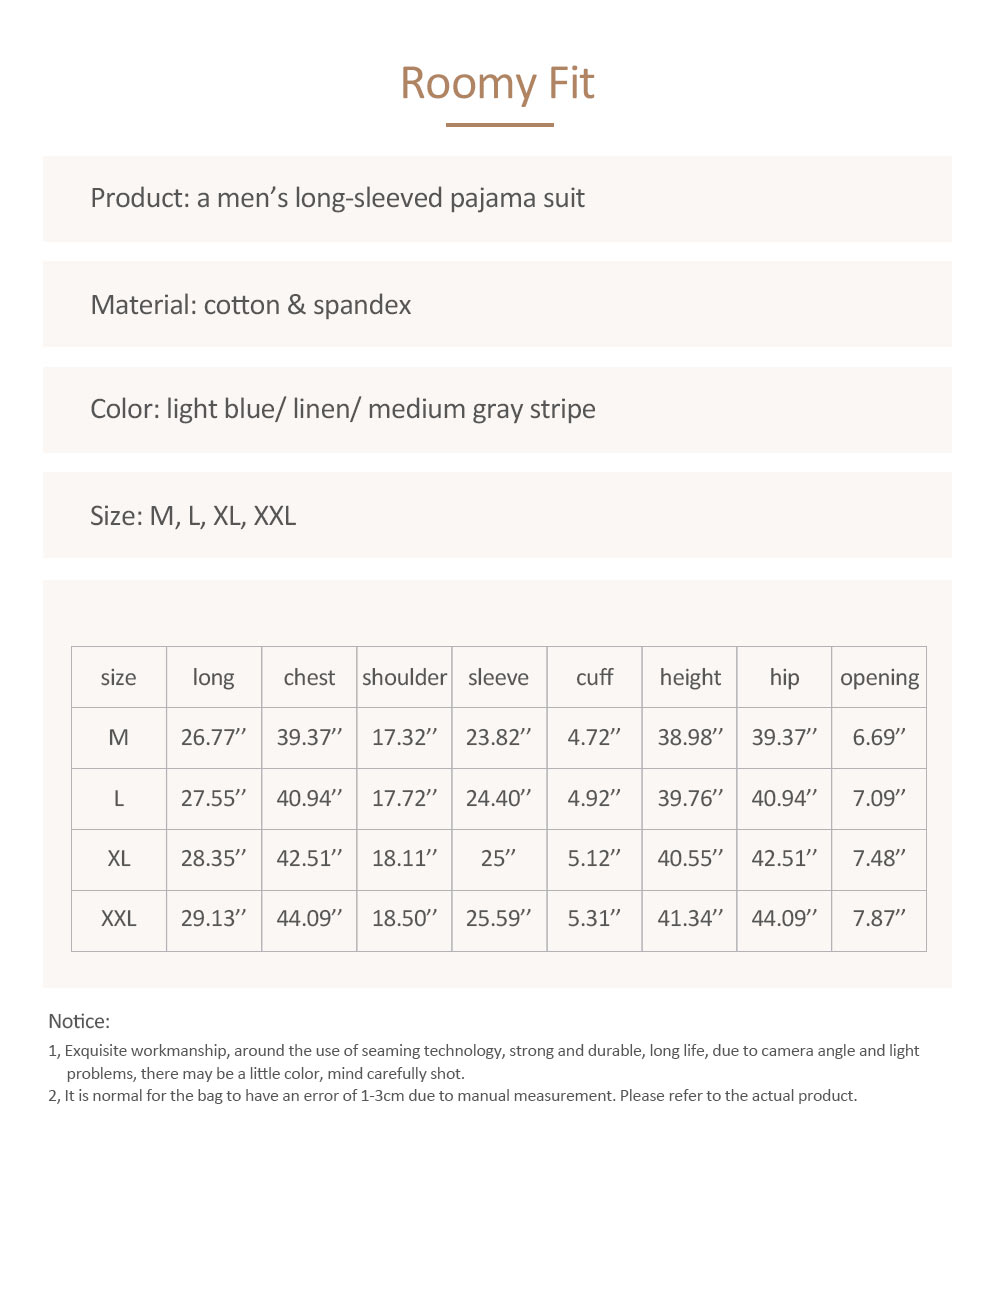 Mens Sleeping Pajamas Suit, Long-sleeved Casual Knit Pajama Suit with V-neck Design for Spring and Autumn 7